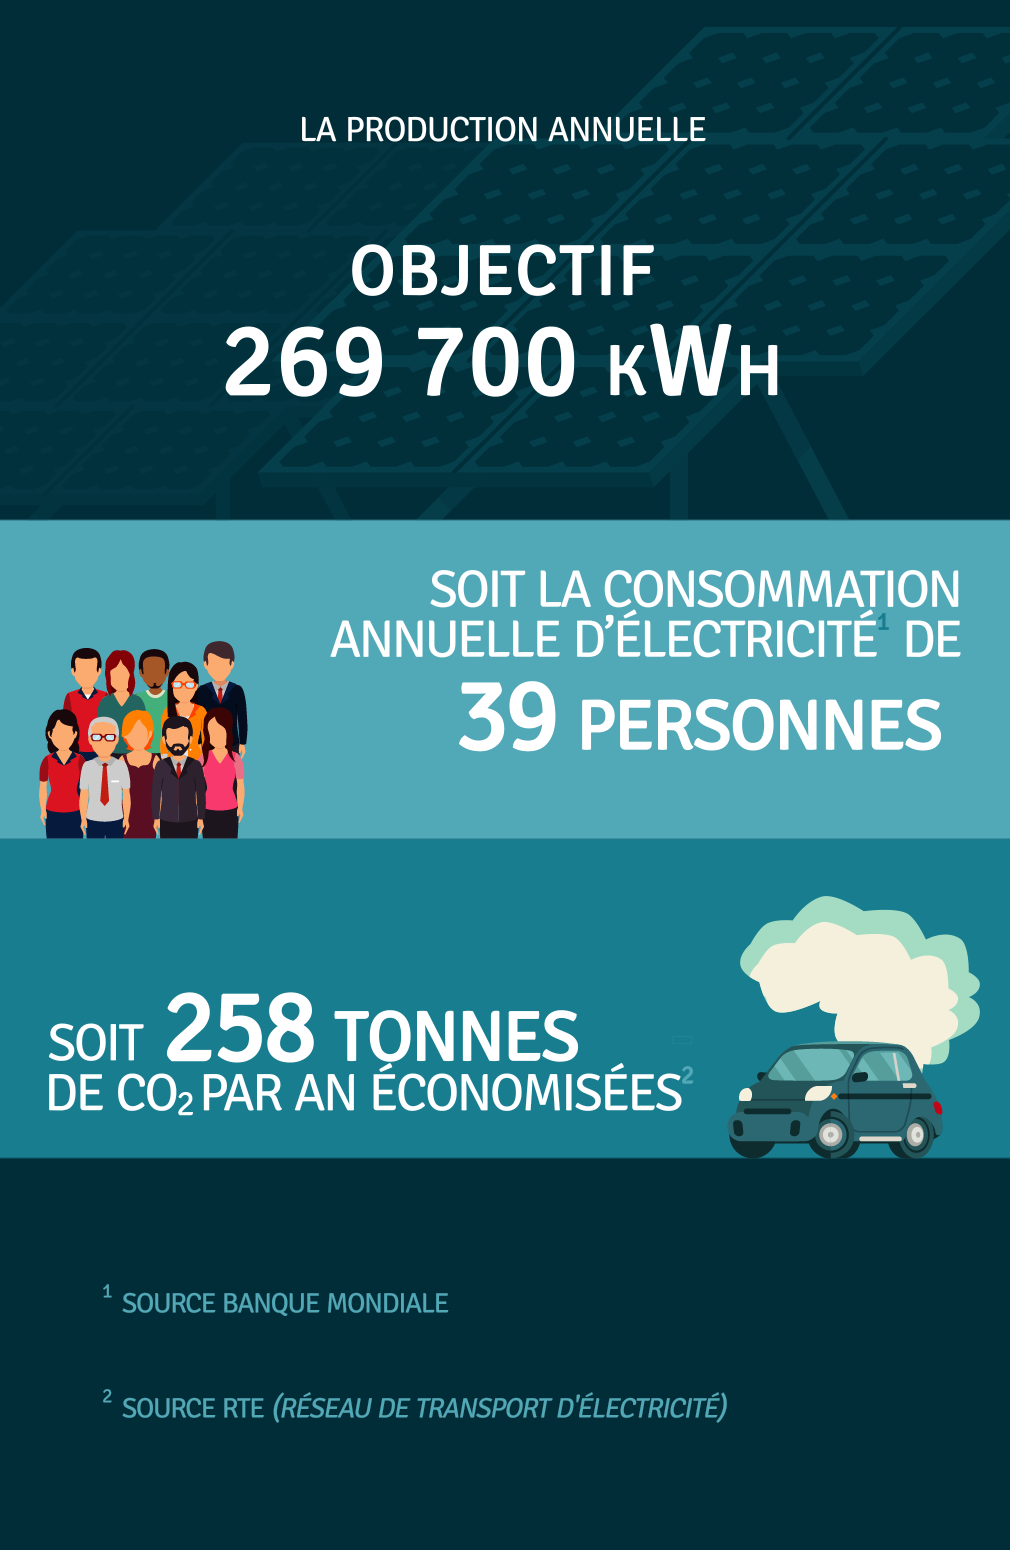 Production annuelle 269 700 kWh